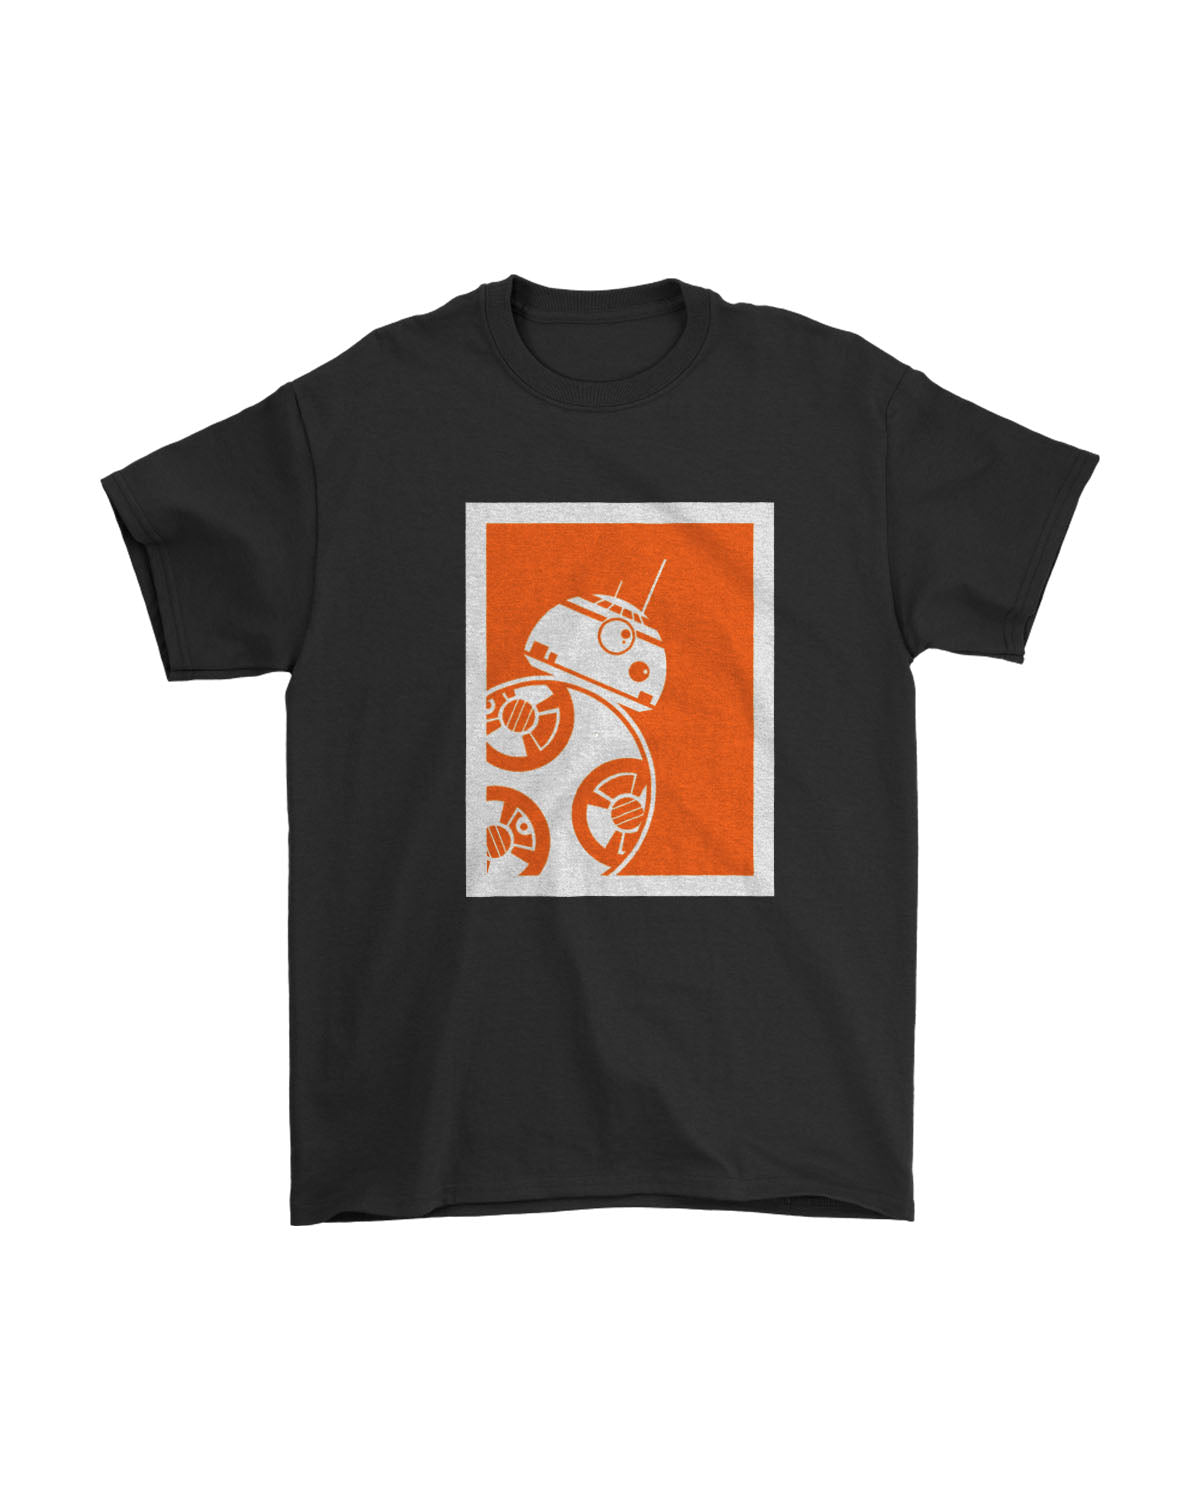 They See Me Rollin Star Wars Bb8 Robot Poster Men's T-Shirt